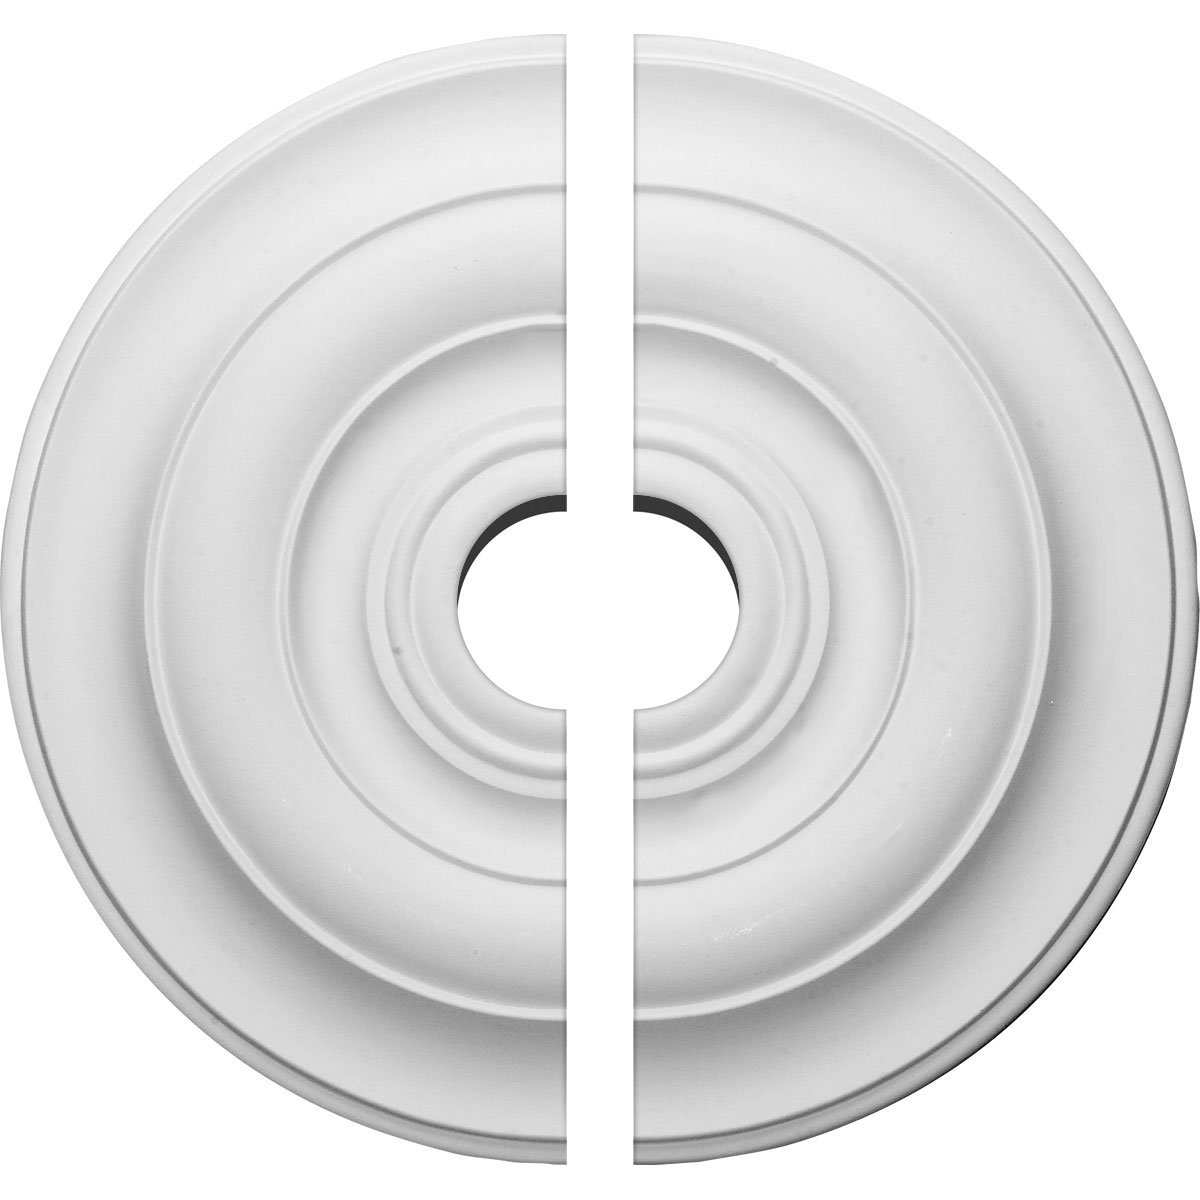 Ekena Millwork CM18NI2-03500 18'' OD x 3 ID x 1 1/2'' P Niobe Ceiling Medallion, Two Piece (Fits Canopies up to 8 5/8''), Factory Primed and Ready to Paint